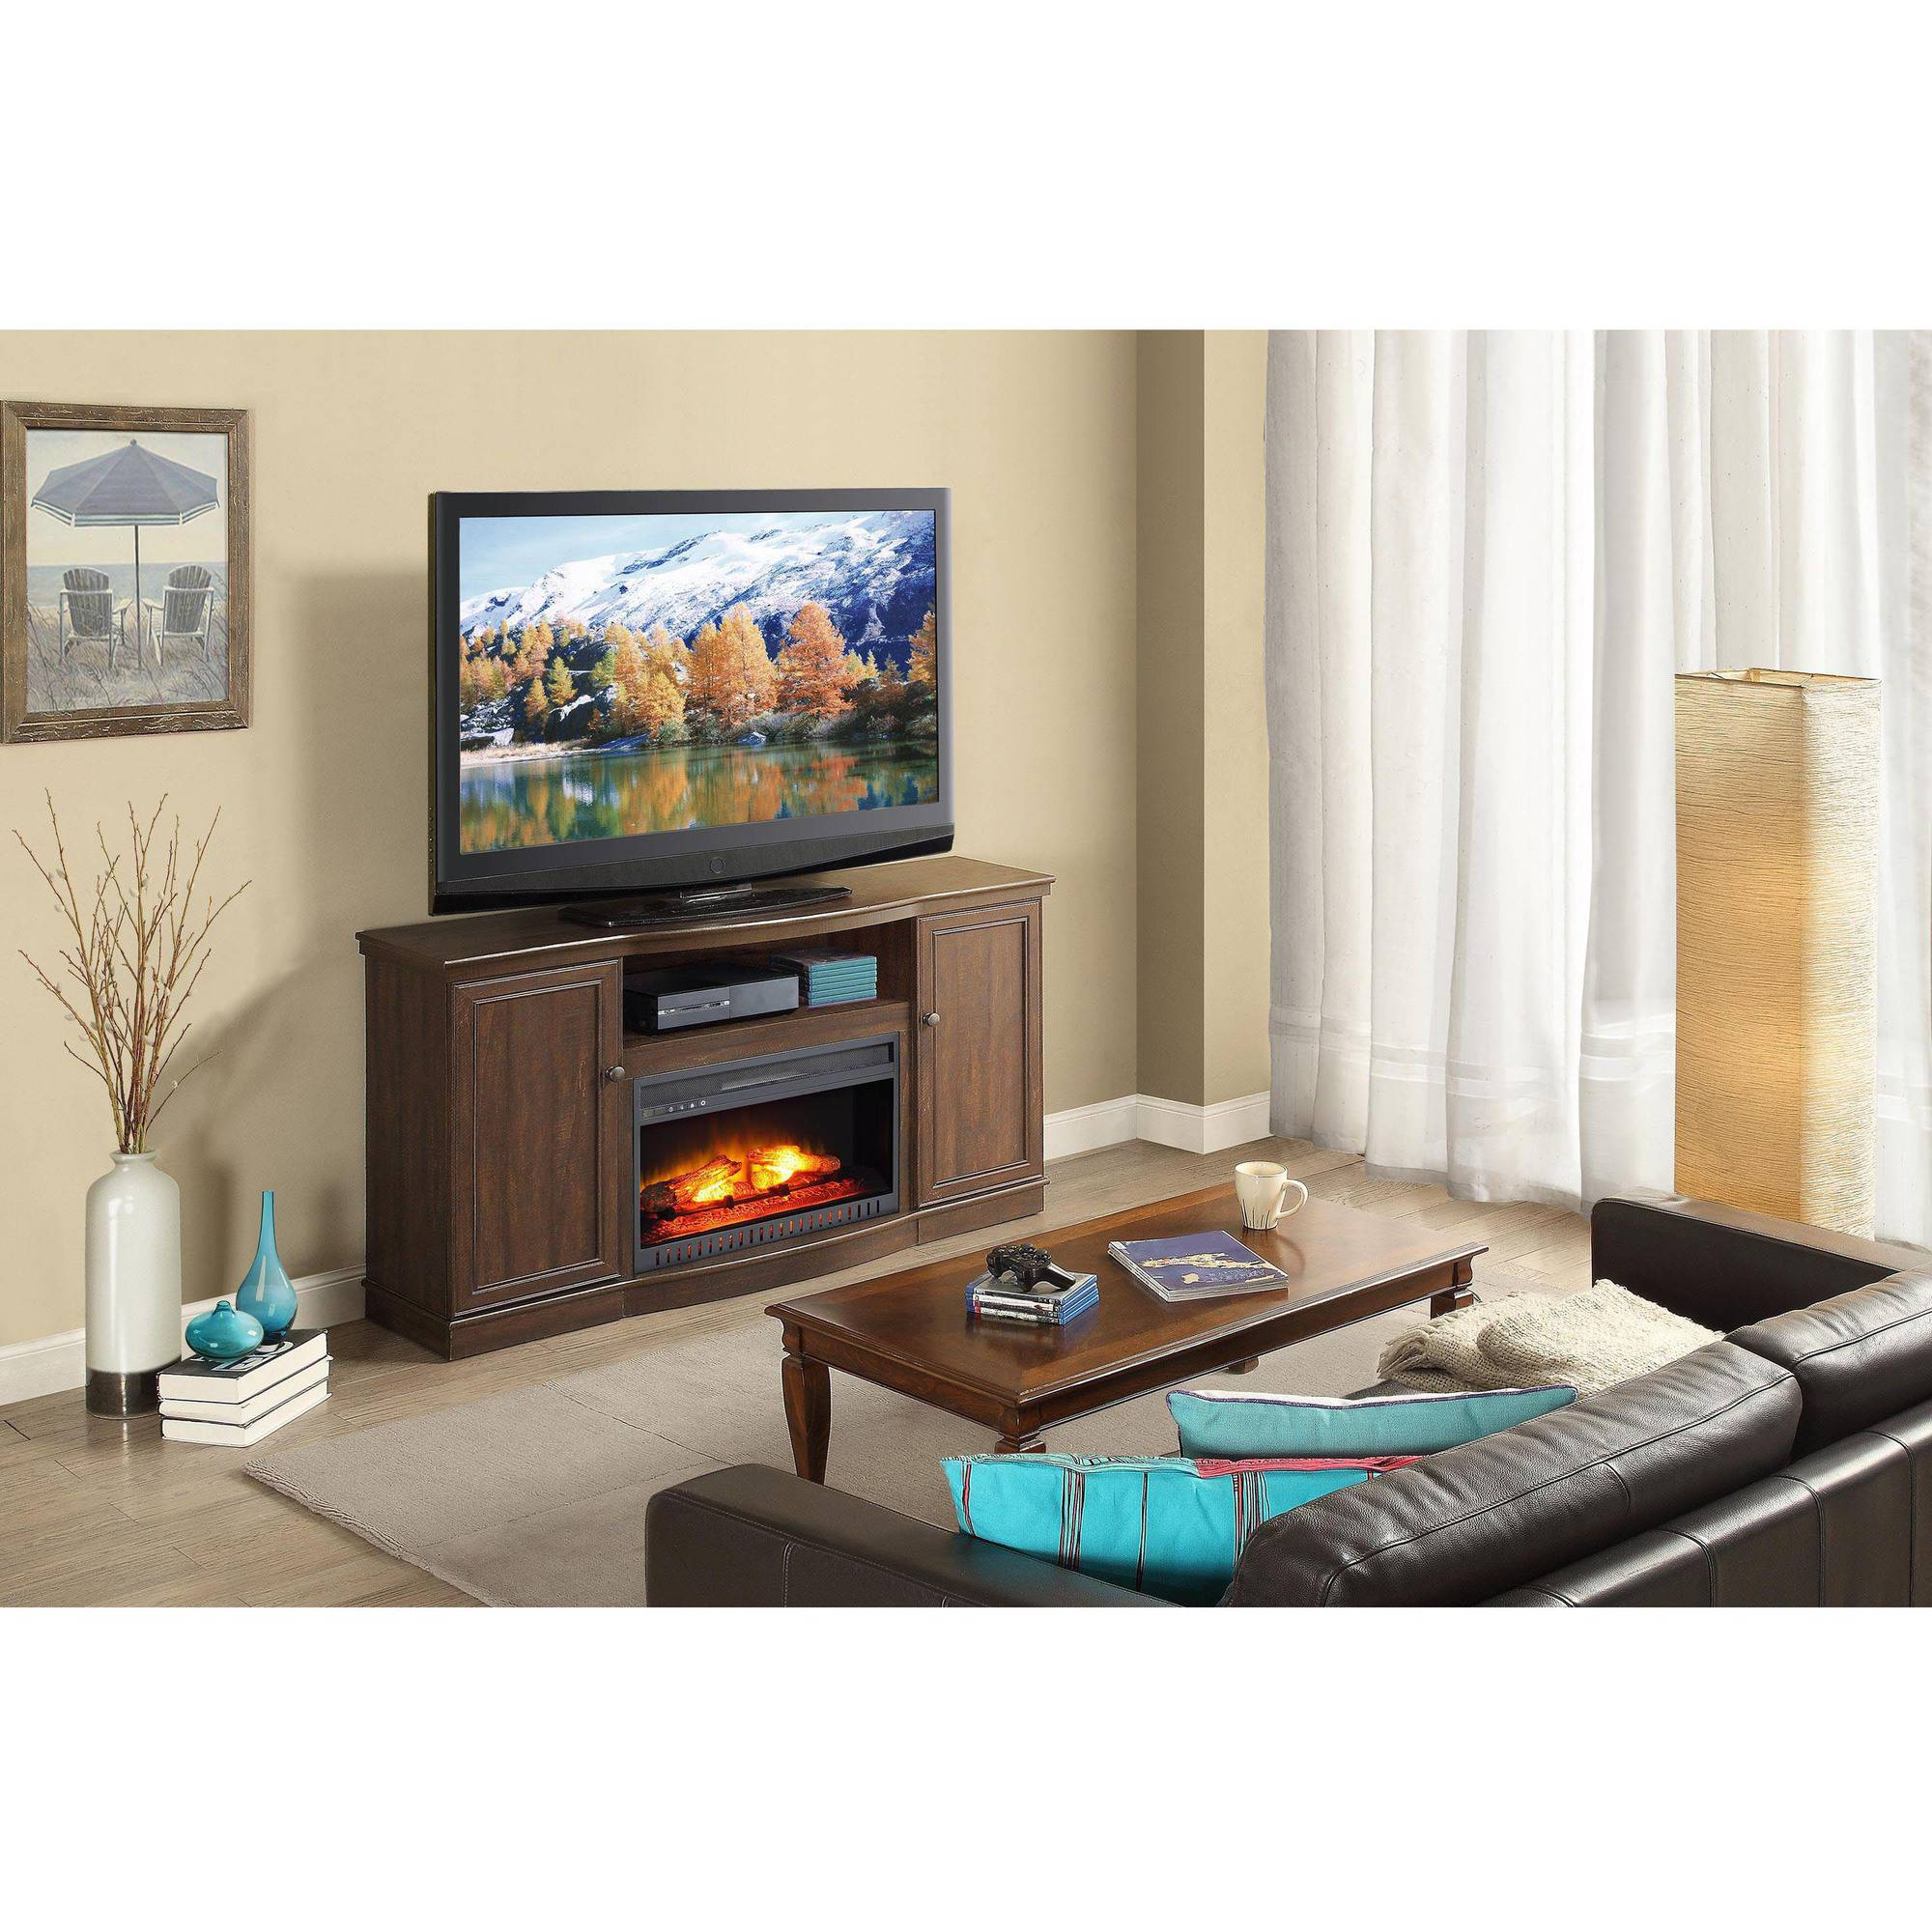 Wood Spaces Target Stand Black Fireplace Tall Wall Inch Mahogany Intended For Marvin Rustic Natural 60 Inch Tv Stands (View 23 of 30)